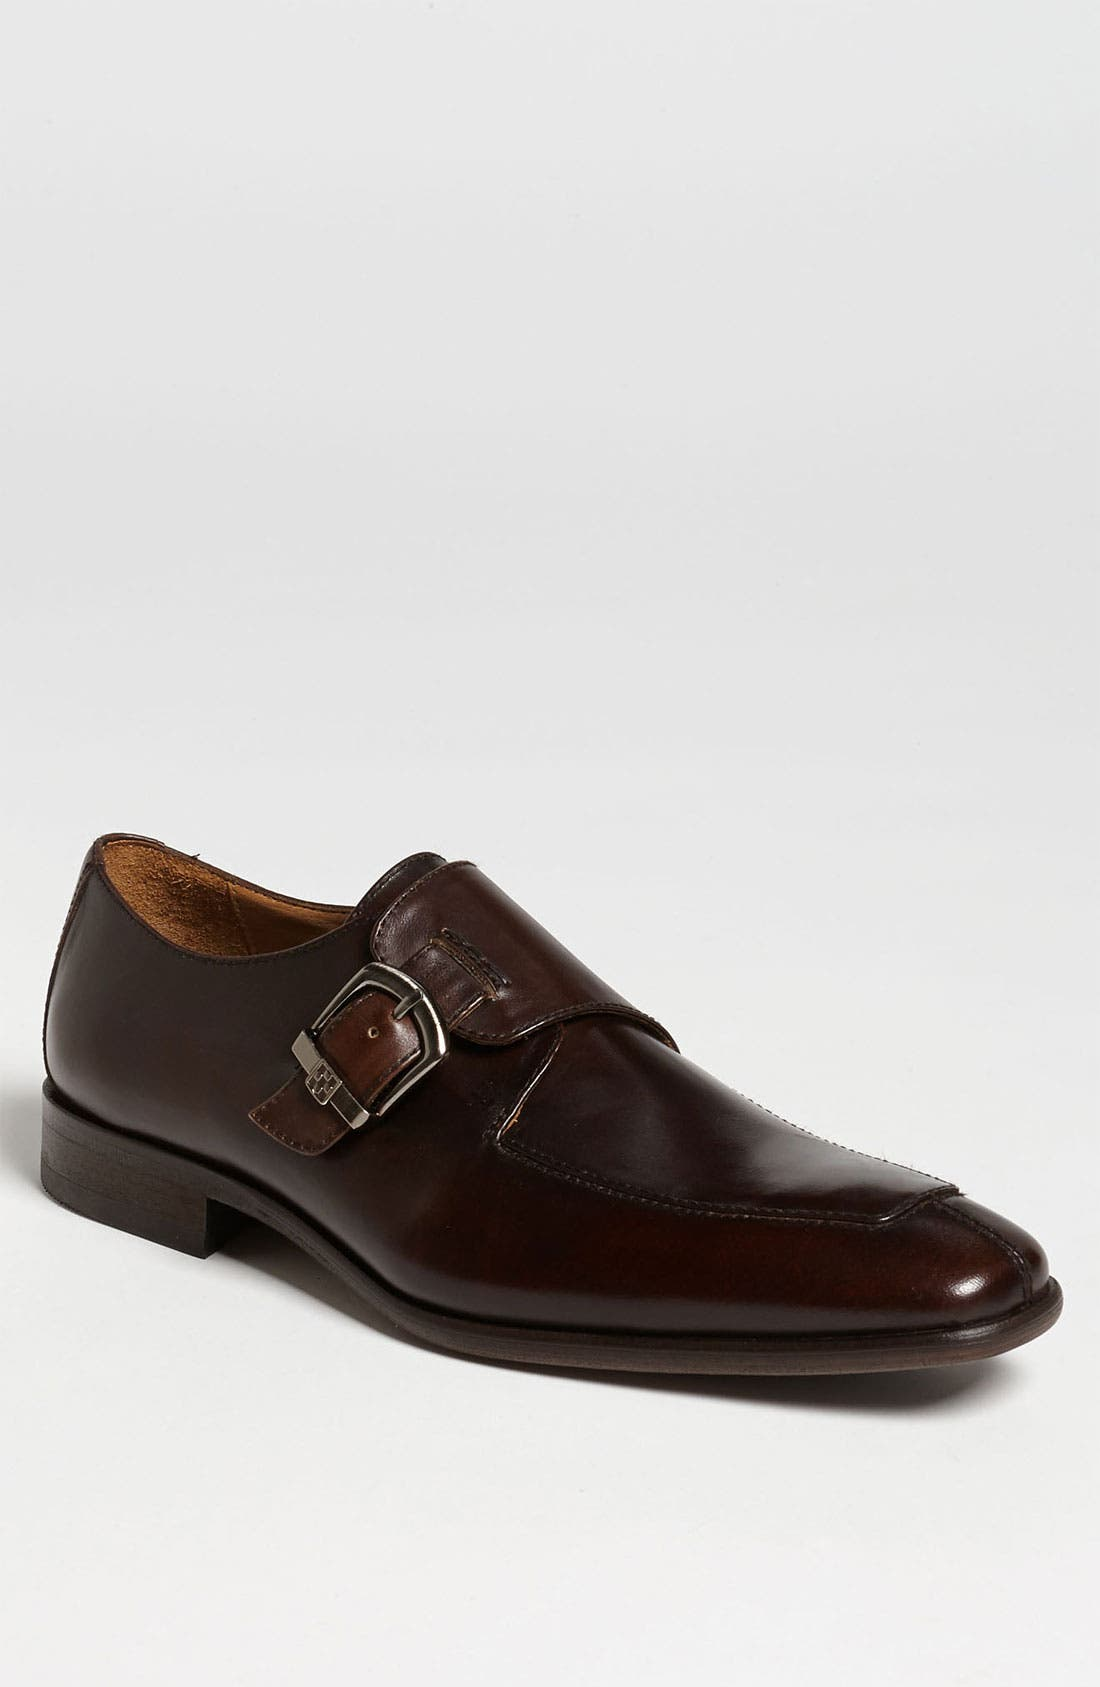 Alternate Image 1 Selected - Vince Camuto 'Ravenna' Monk Strap Slip-On